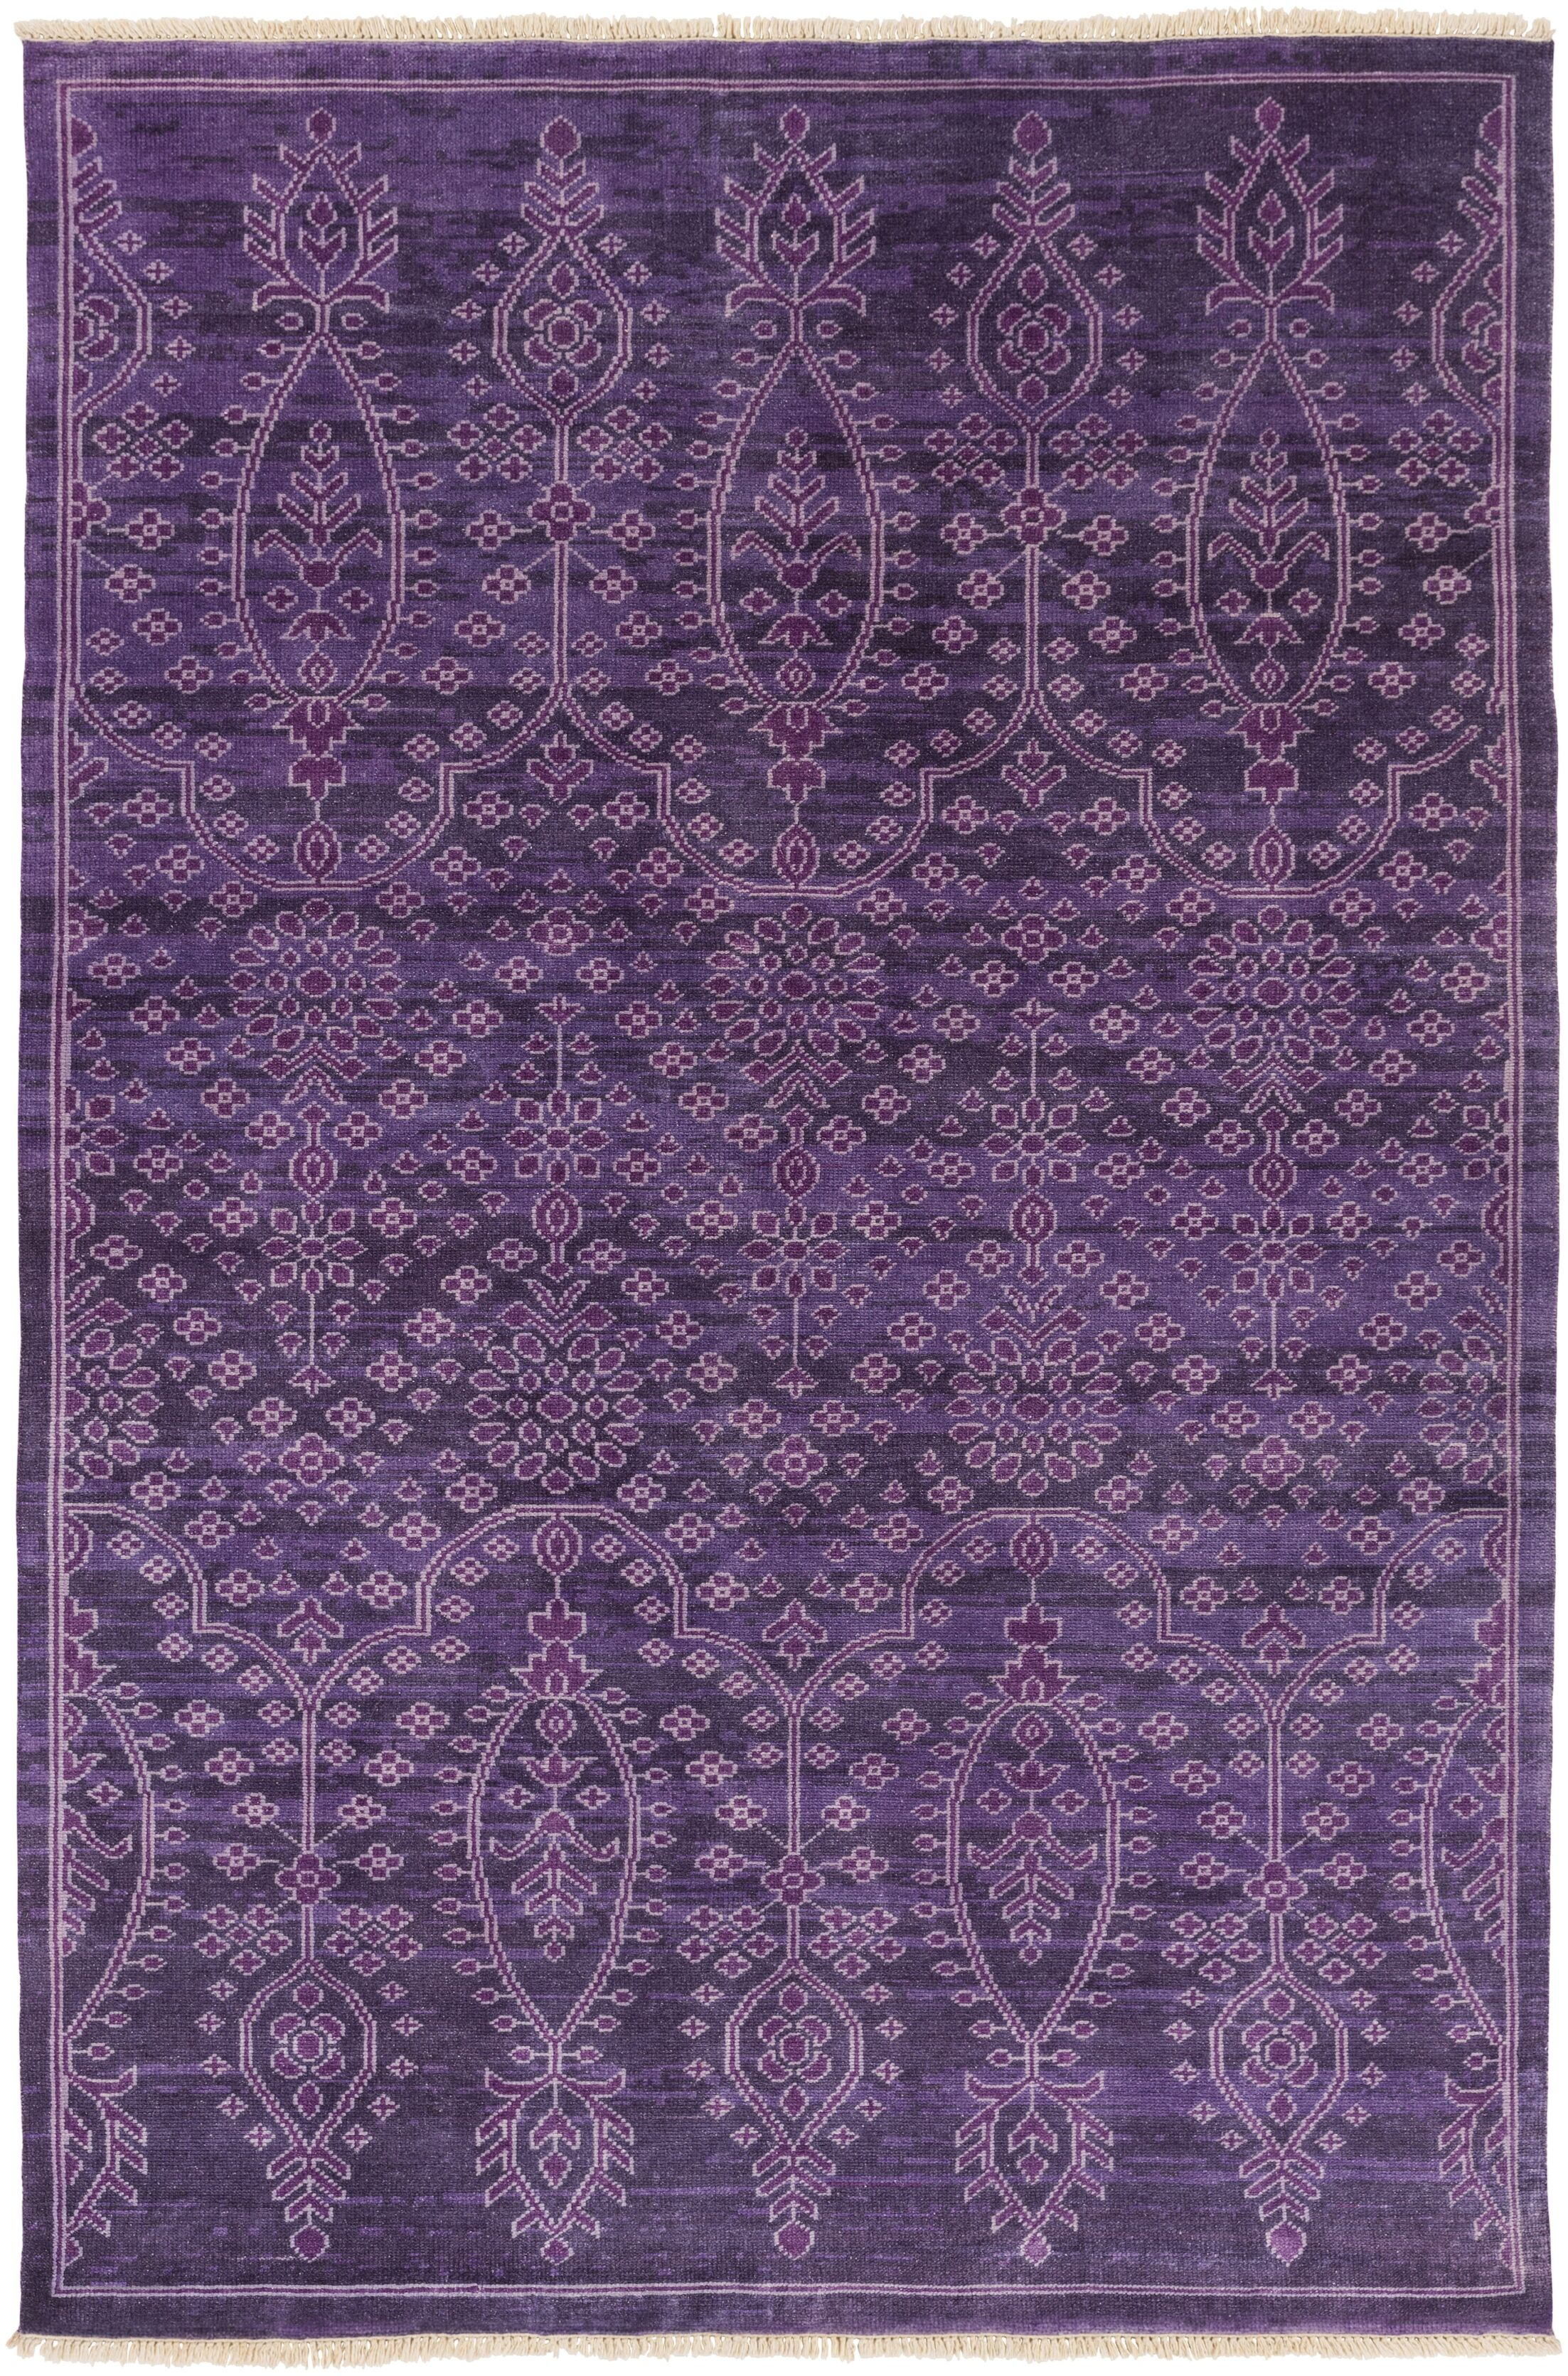 Heerlen Hand-Knotted Purple Area Rug Rug Size: Rectangle 5'6